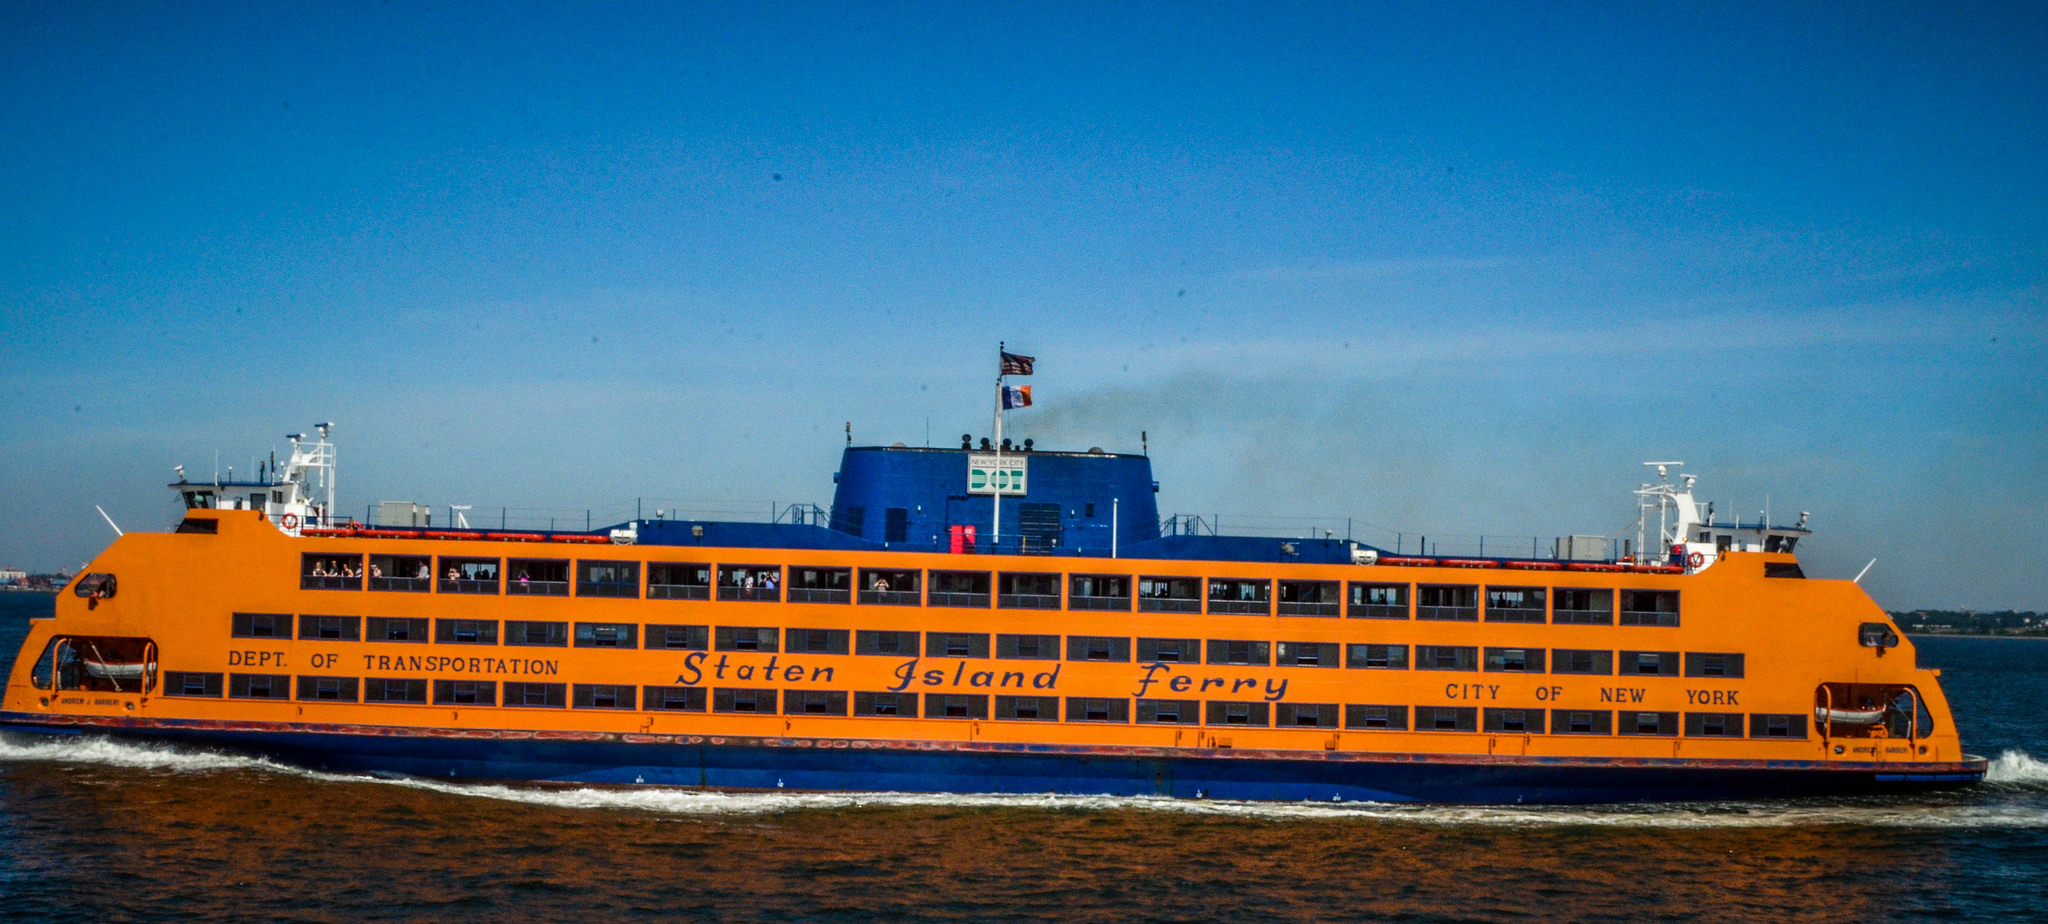 Pacific Kitchen Staten Island The History Of The Staten Island Ferry In 1 Minute